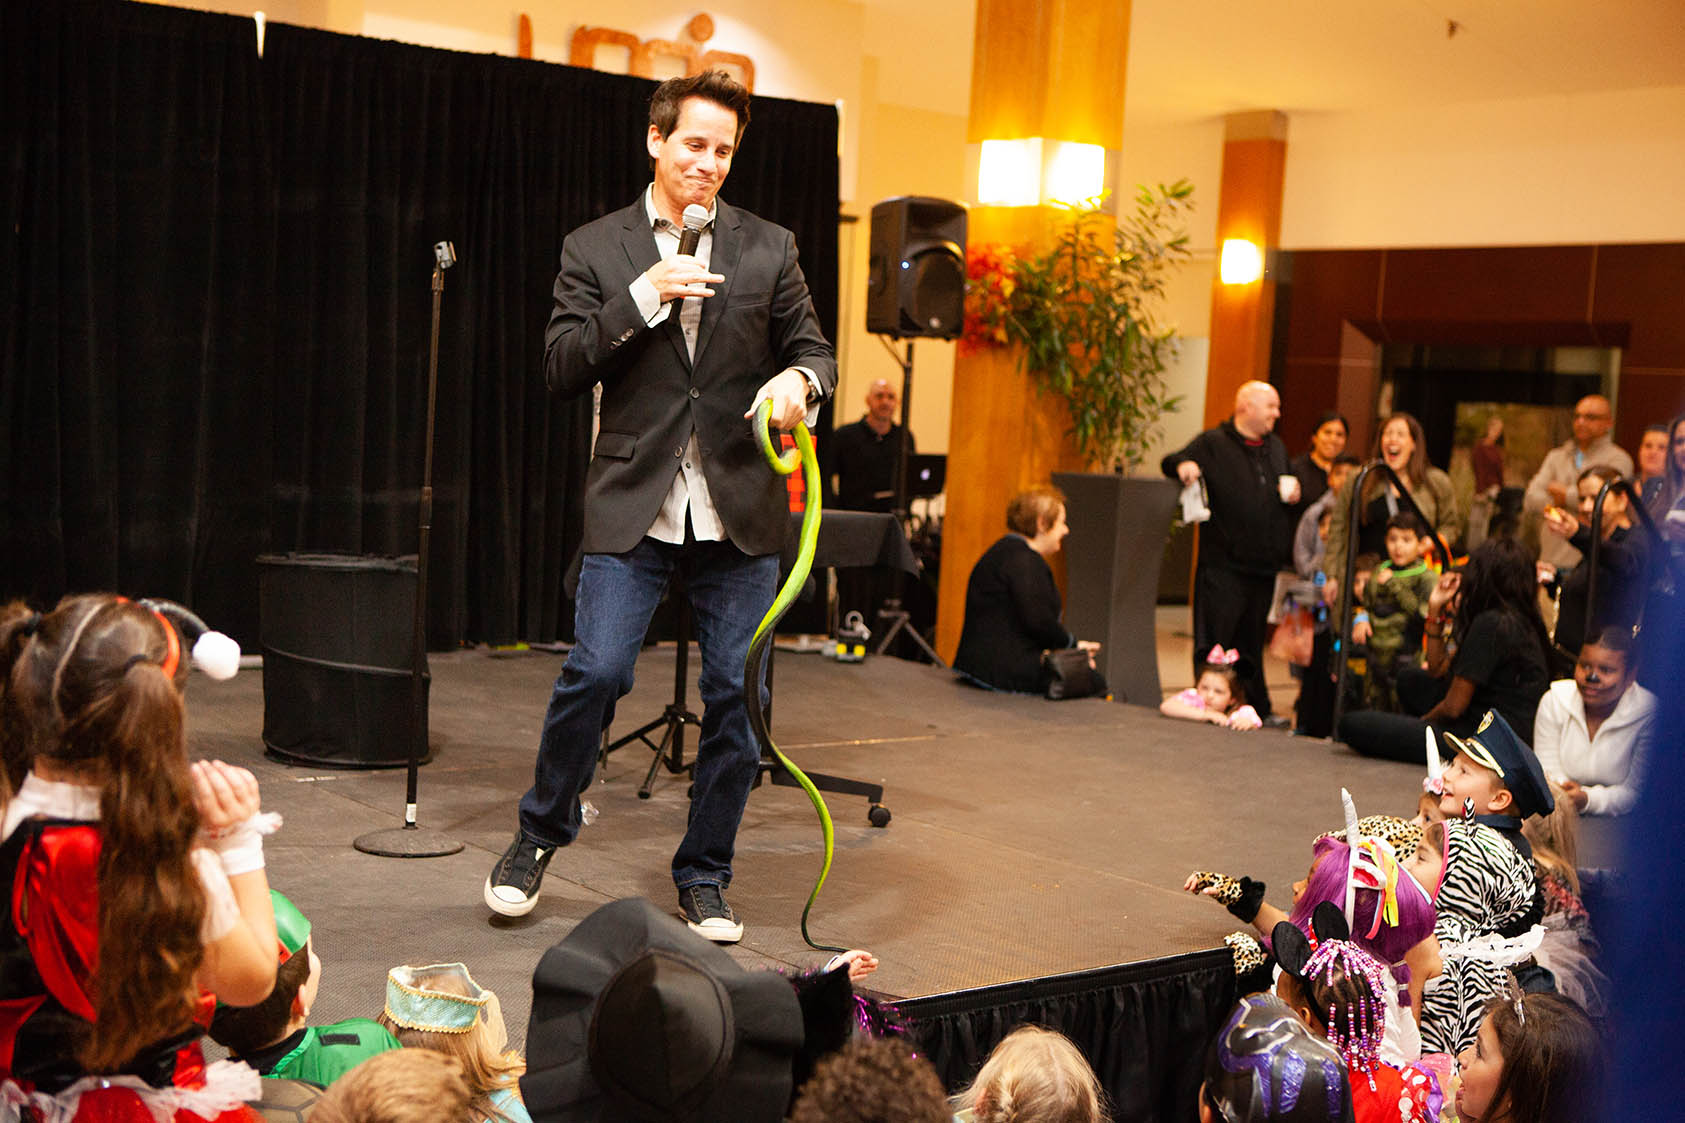 Magician Jasen entertains Monster Mash attendees at Orchard Mall on Oct. 26, 2018.